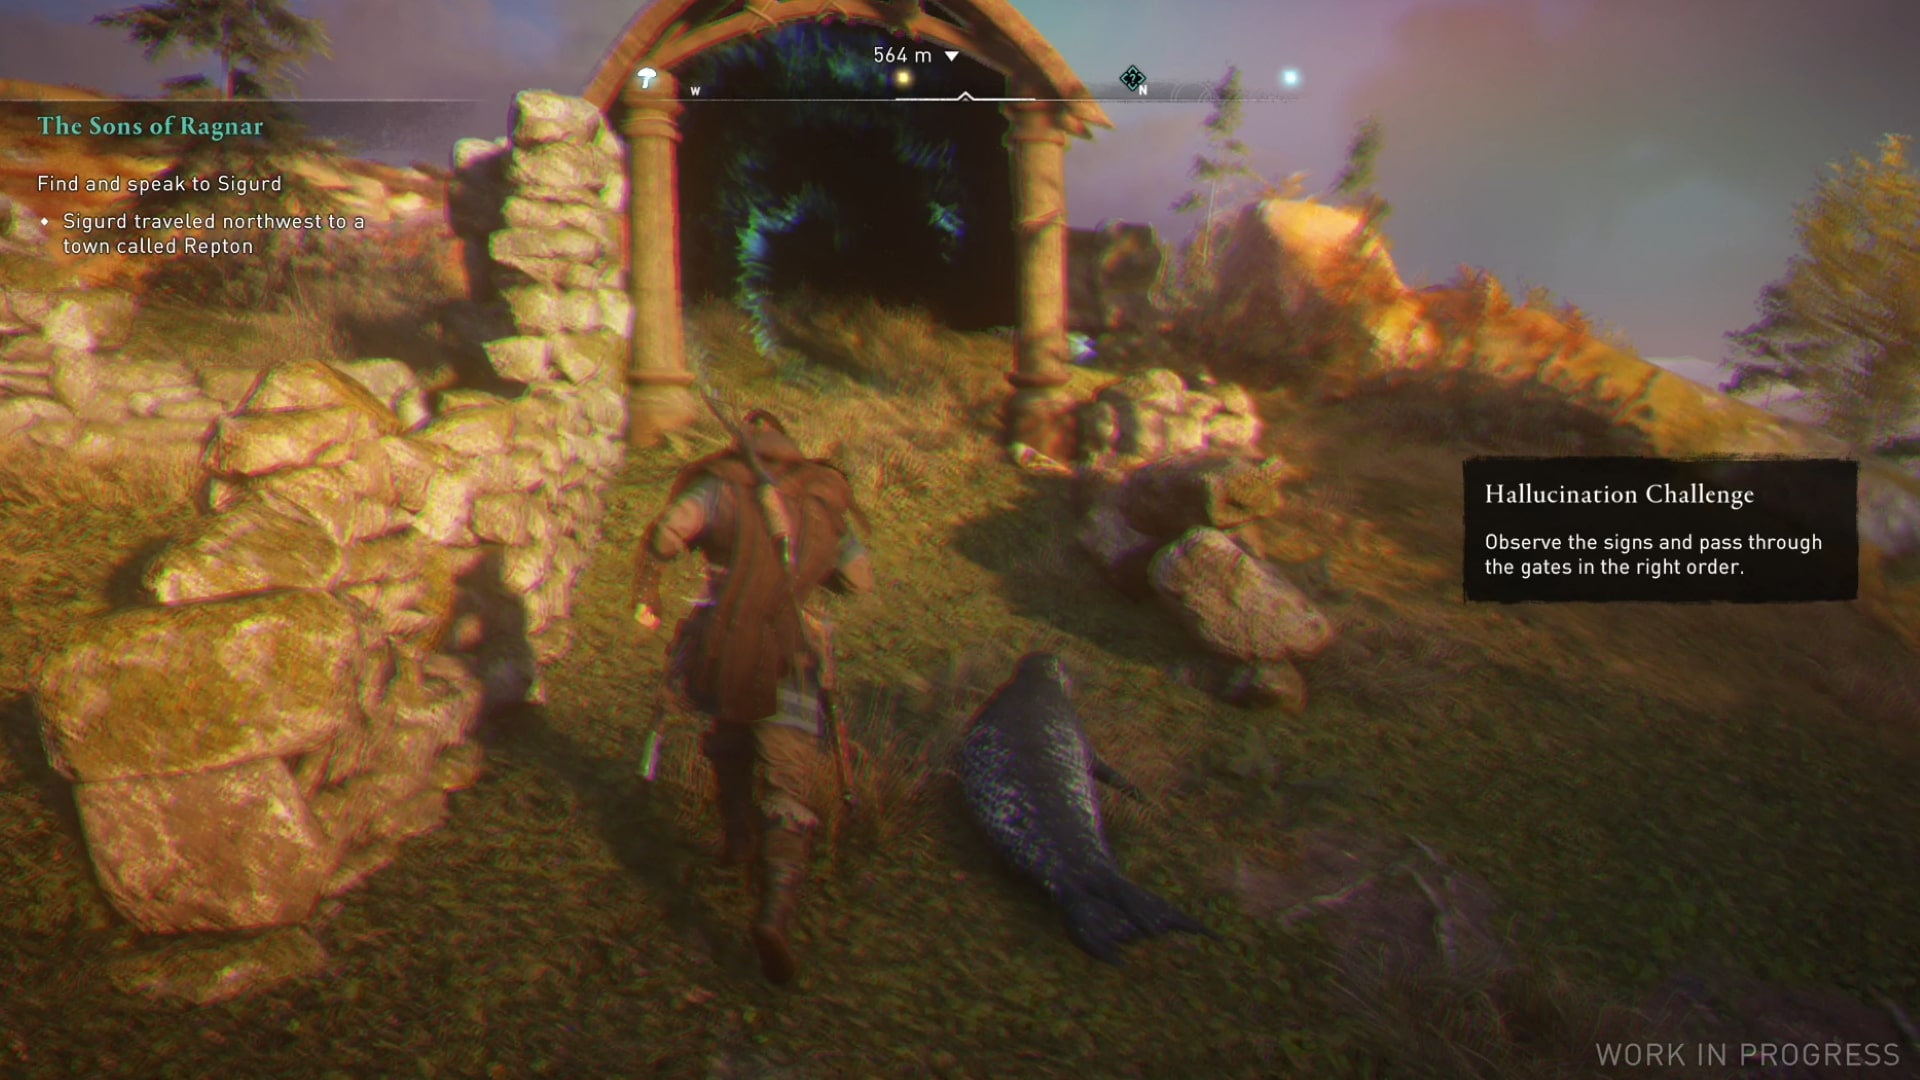 A screenshot showing Eivor following a seal towards a gate in the bizarre hallucinatory challenge.